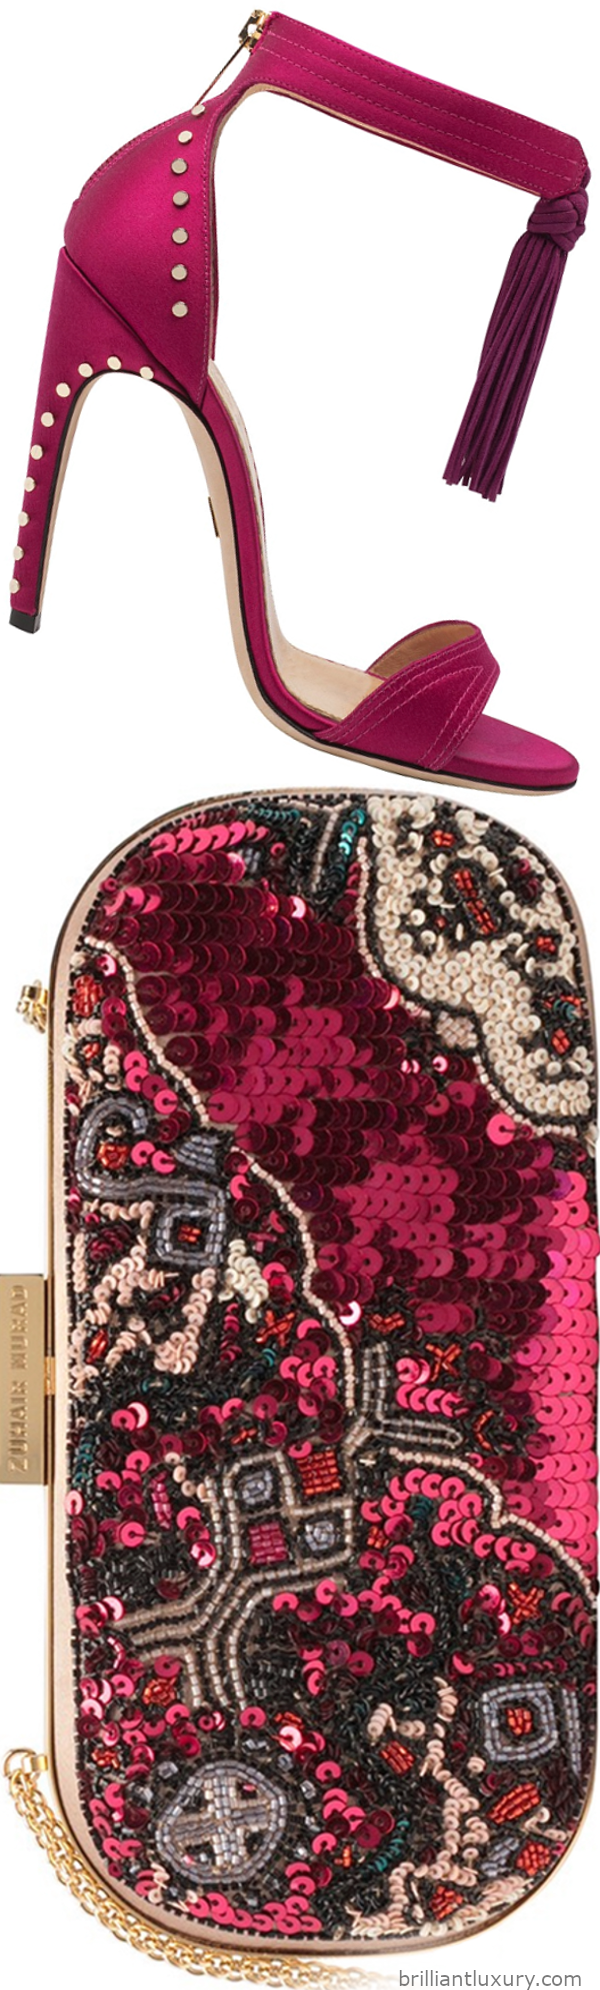 Zuhair Murad tassel sandal and clutch in pink